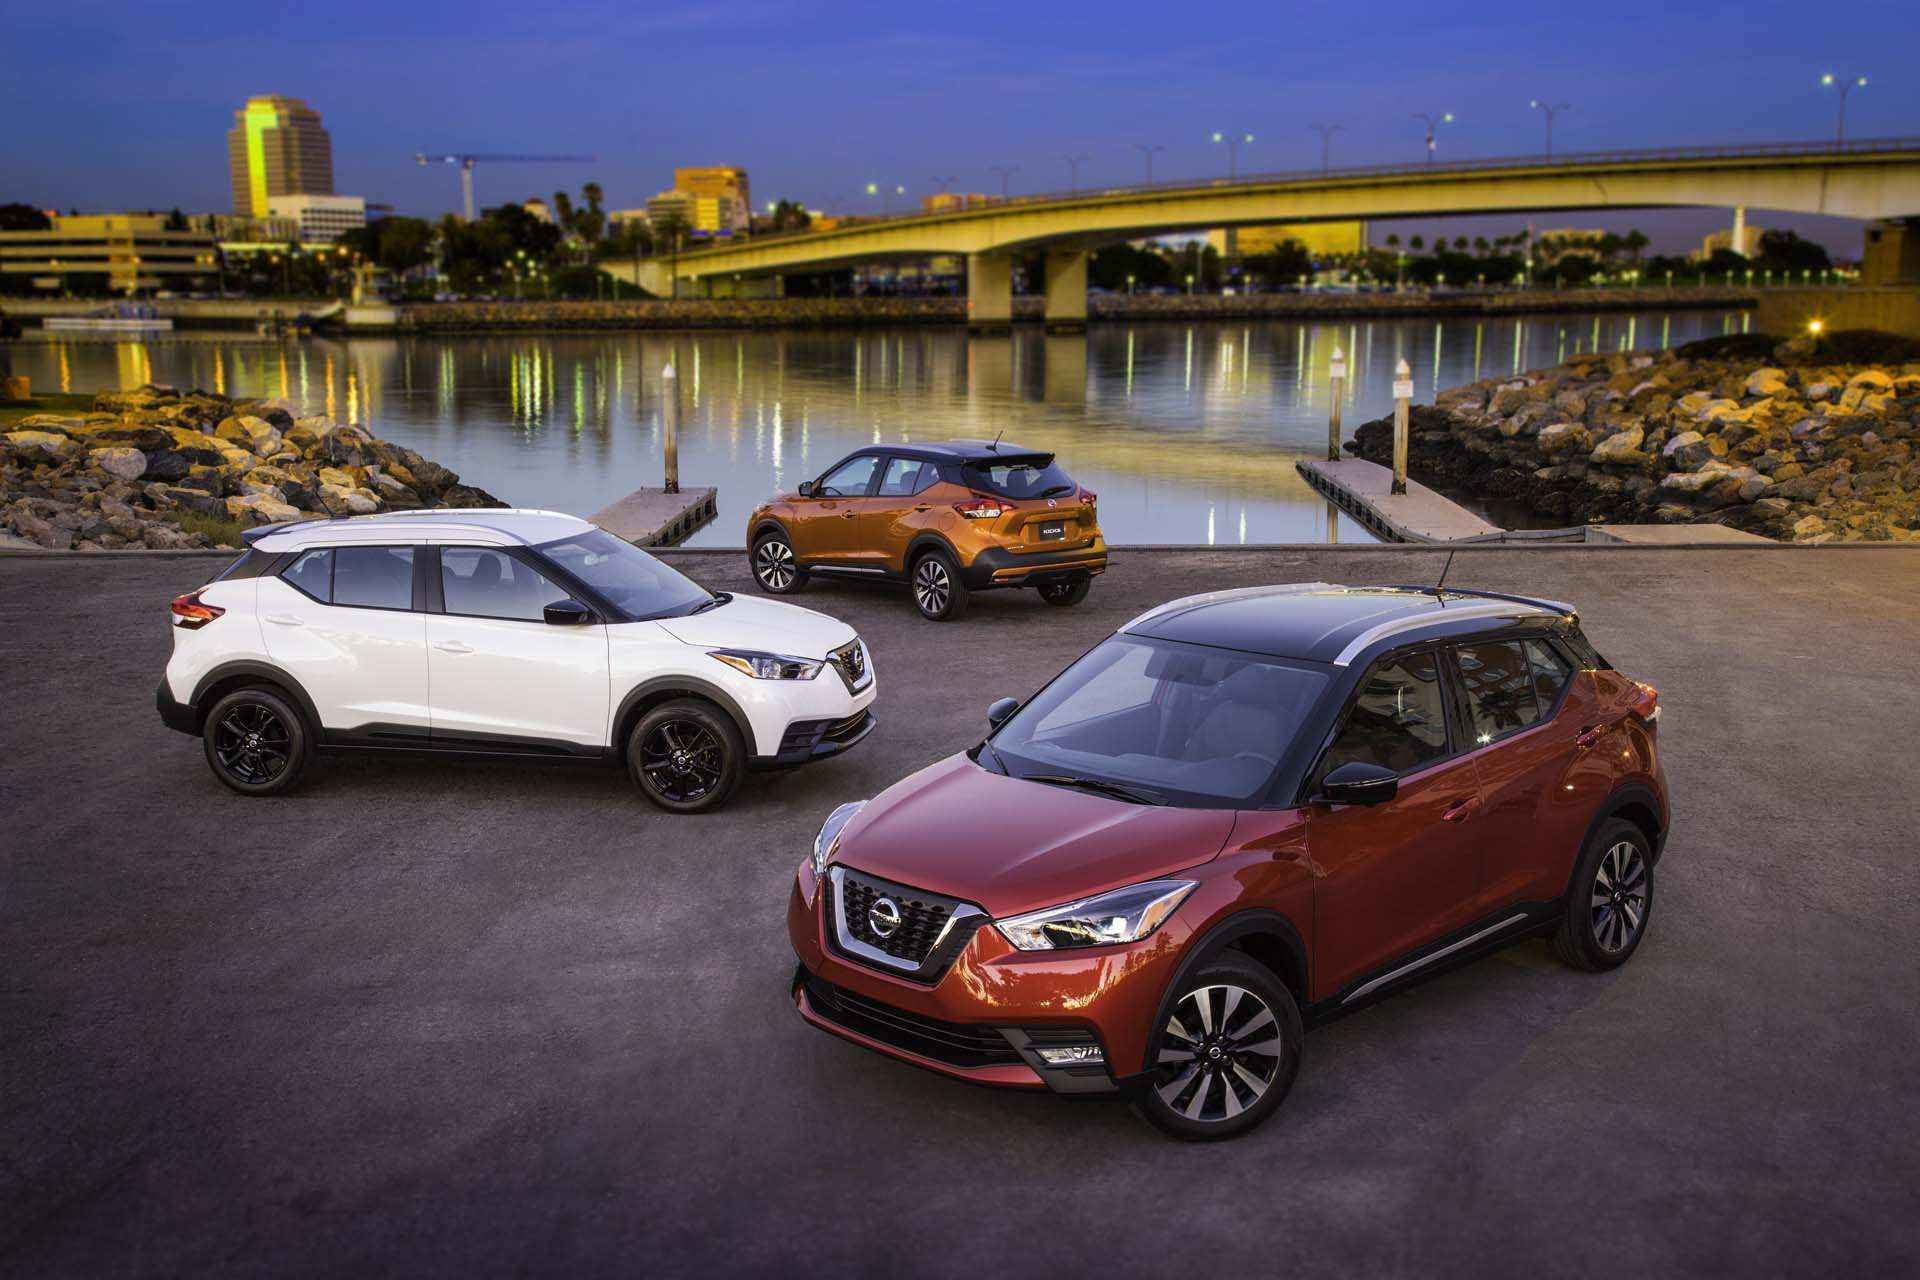 74 Best Review Nissan Kicks 2019 Preco Specs And Review Picture for Nissan Kicks 2019 Preco Specs And Review